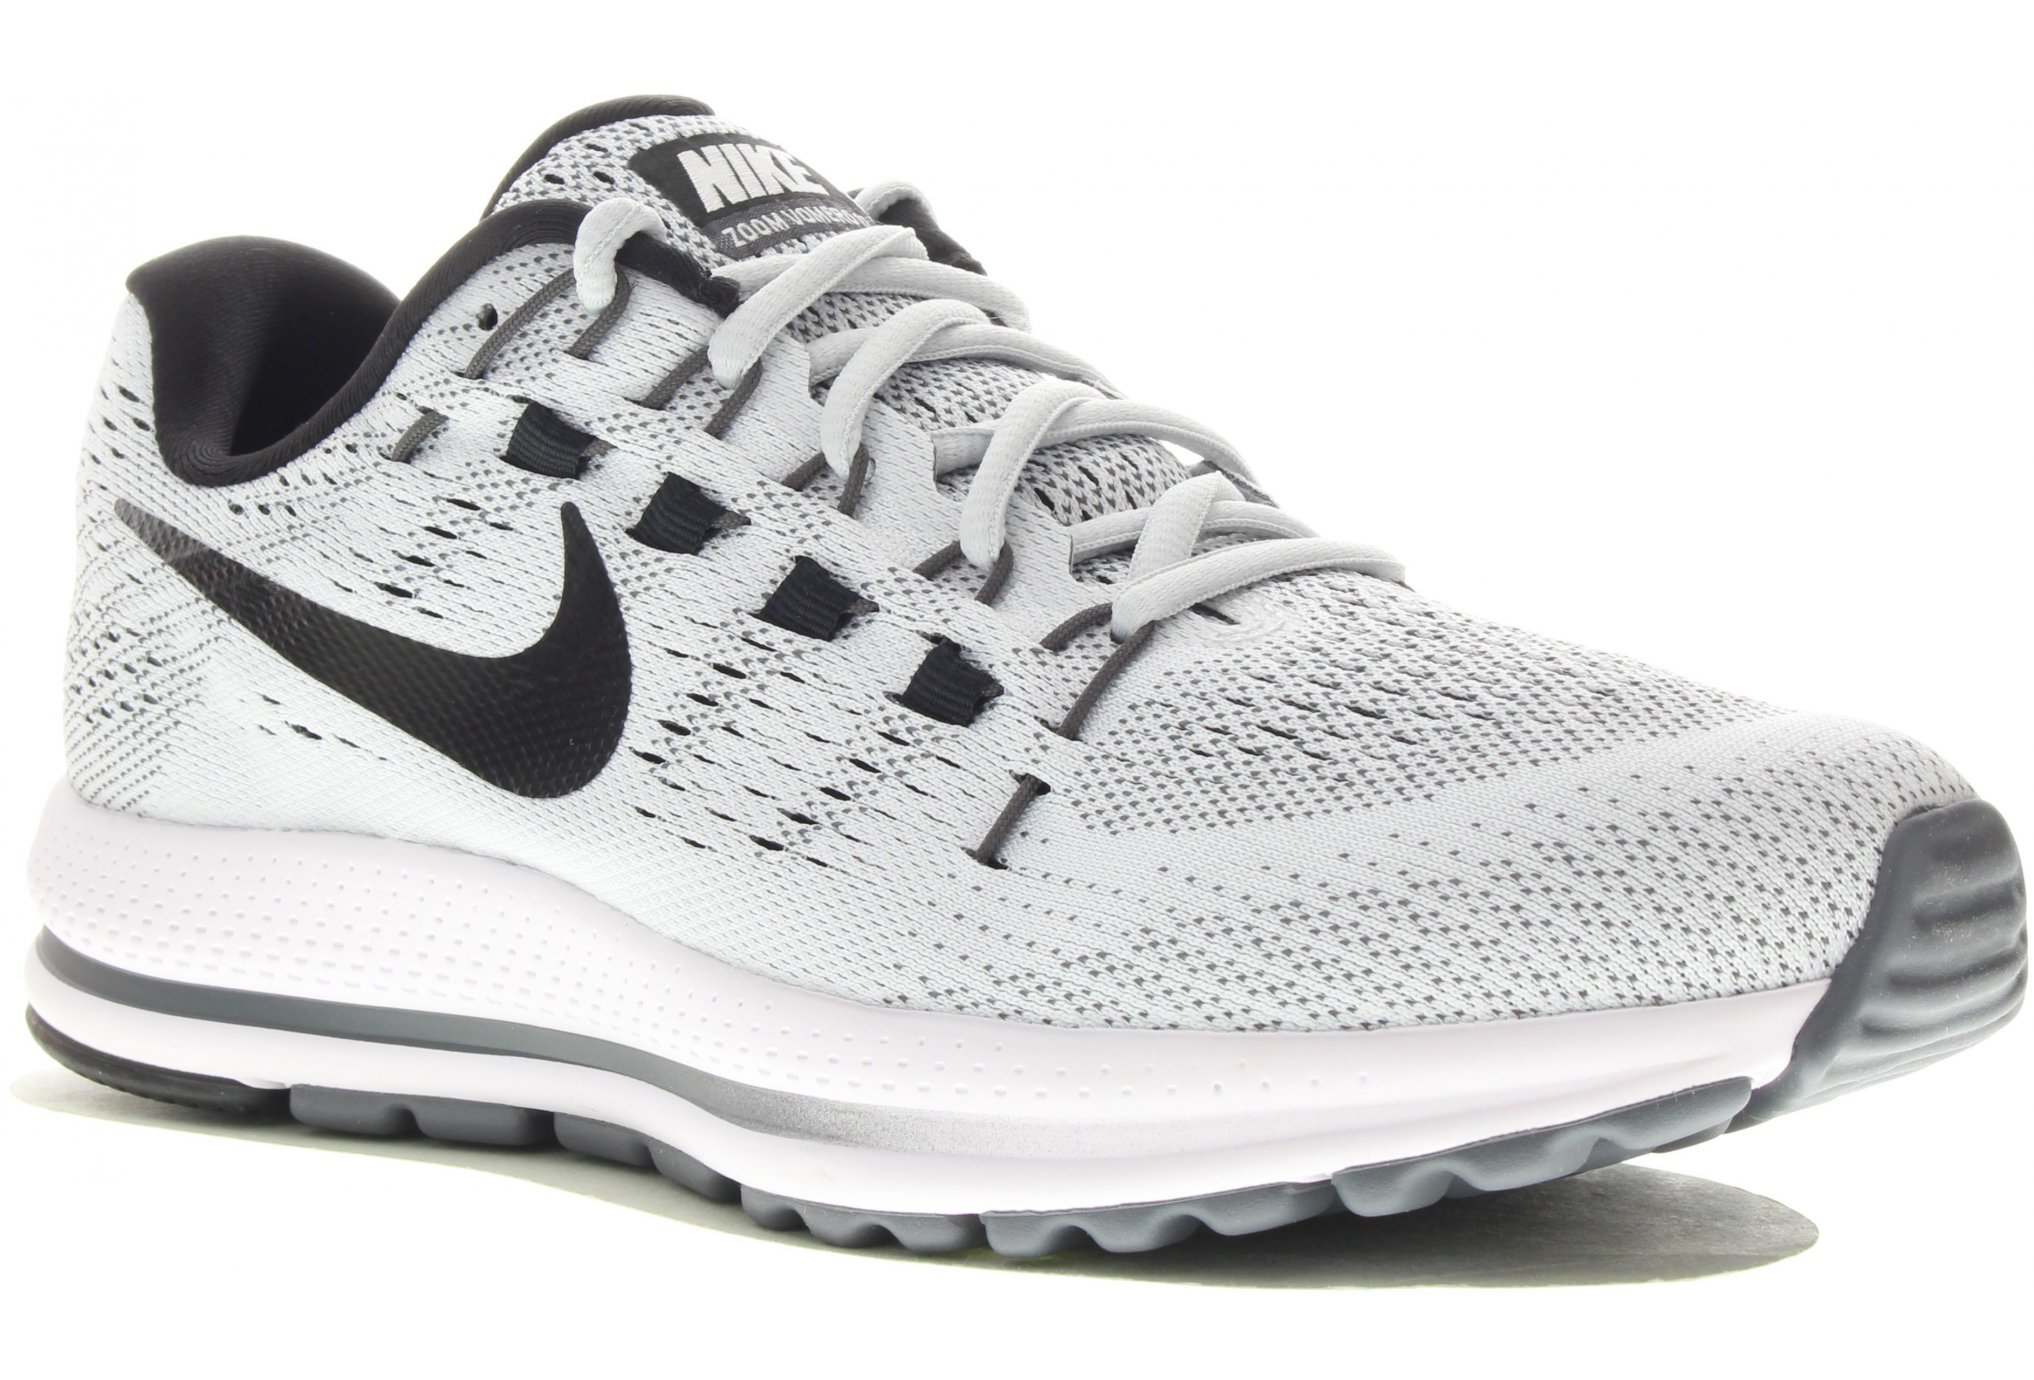 Nike Air Zoom Vomero 12 TB W Chaussures running femme